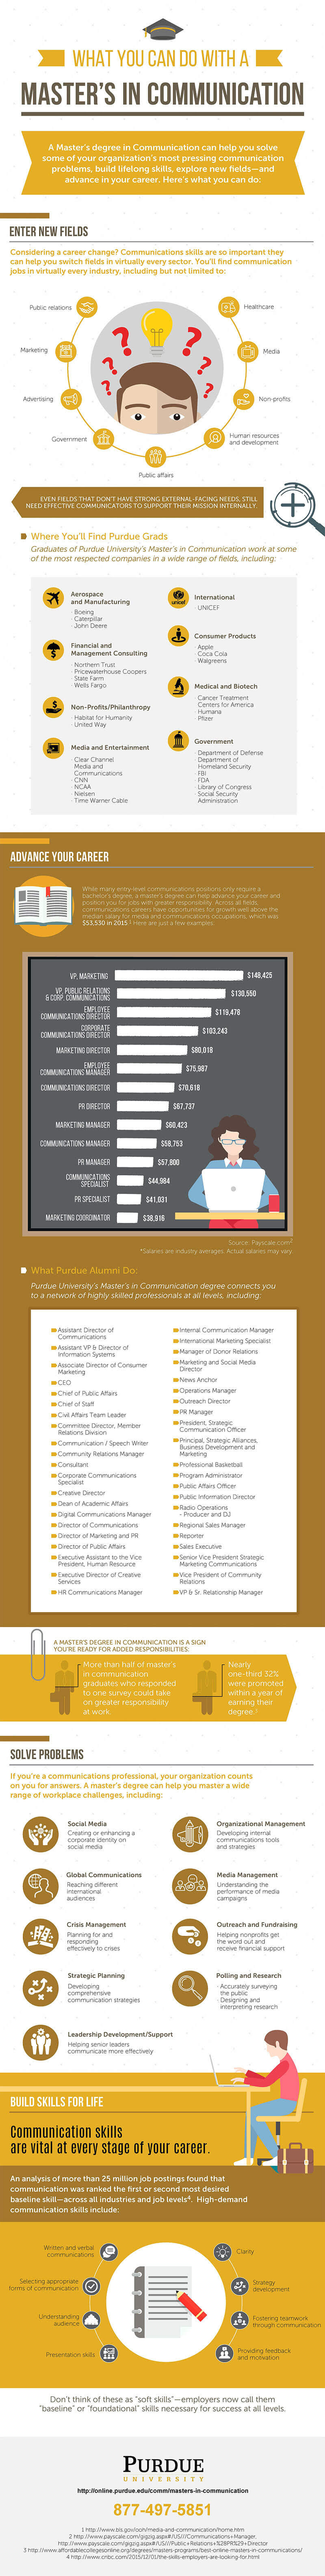 Infographic outlining what you can do with a master's in communication: enter new fields, advance your career, solve problems, and build skills for life.